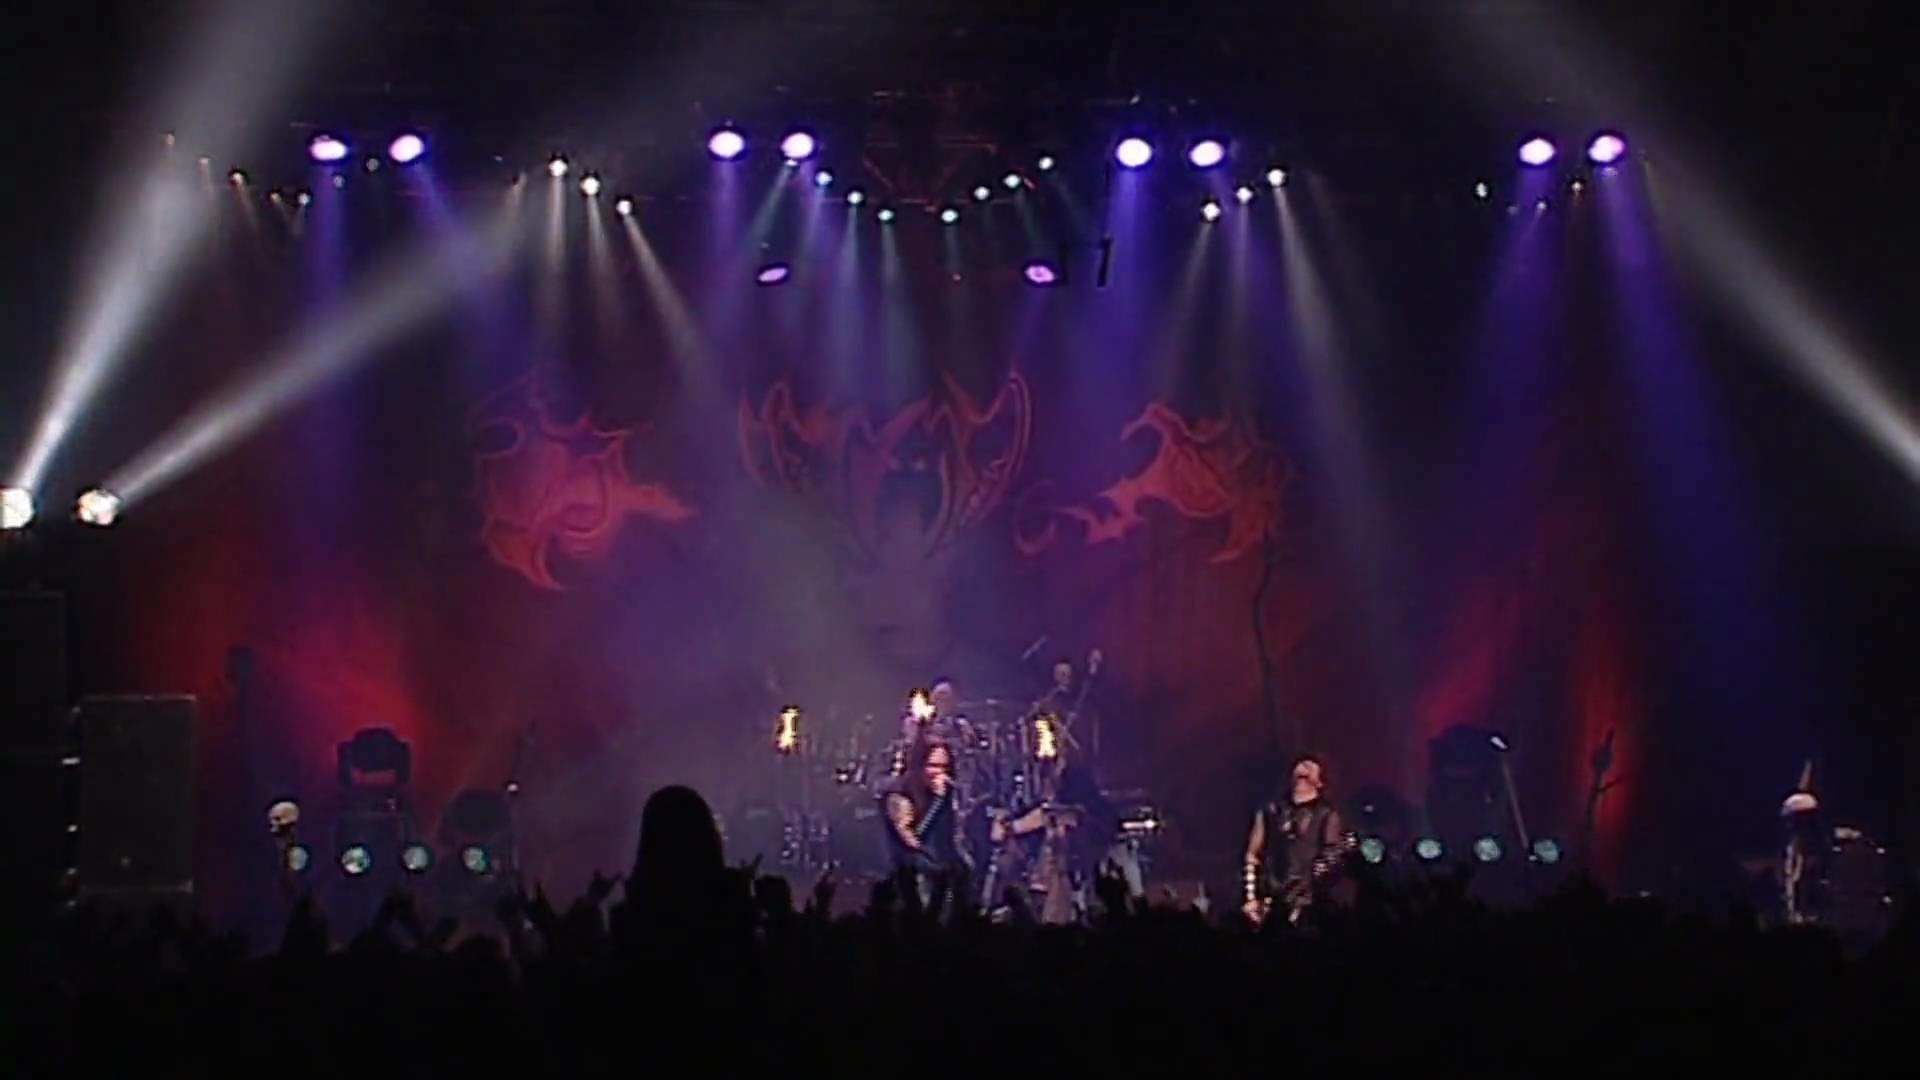 1920x1080 HammerFall - Legacy of Kings (Live at Lisebergshallen, Sweden, 2003) HD -  YouTube